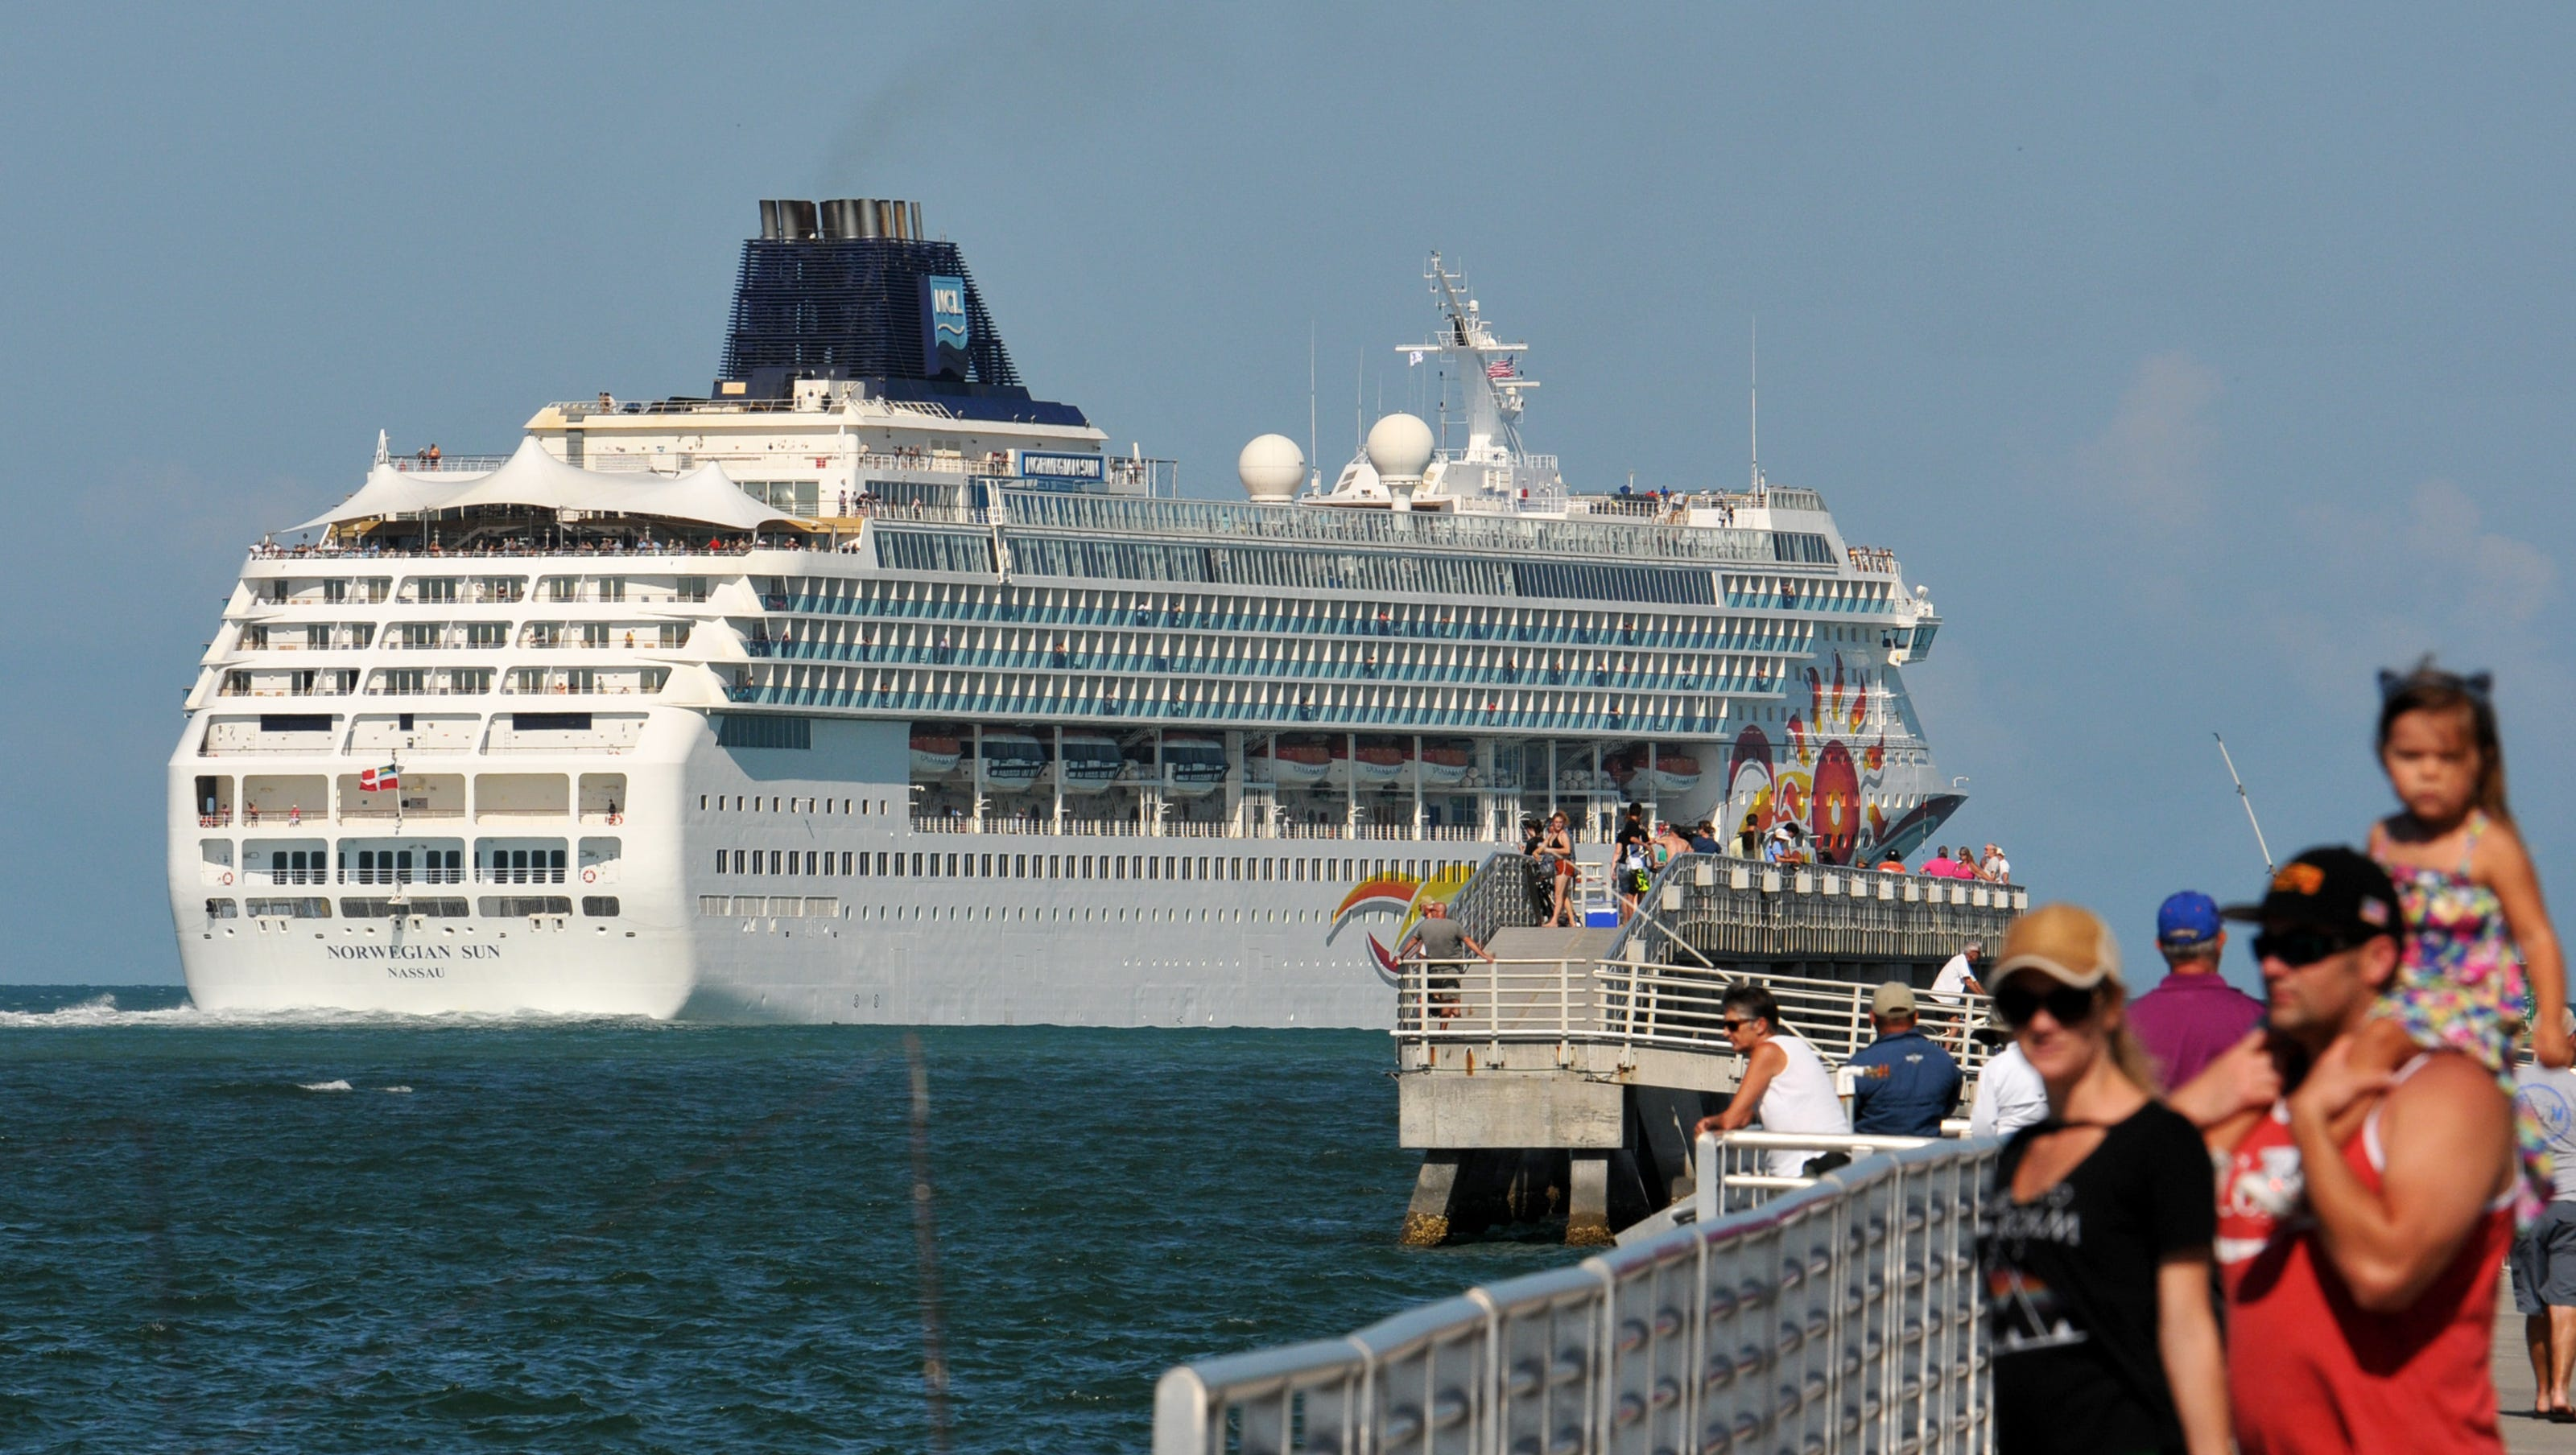 Norwegian Cuba Cruises From Port Canaveral To Resume Next